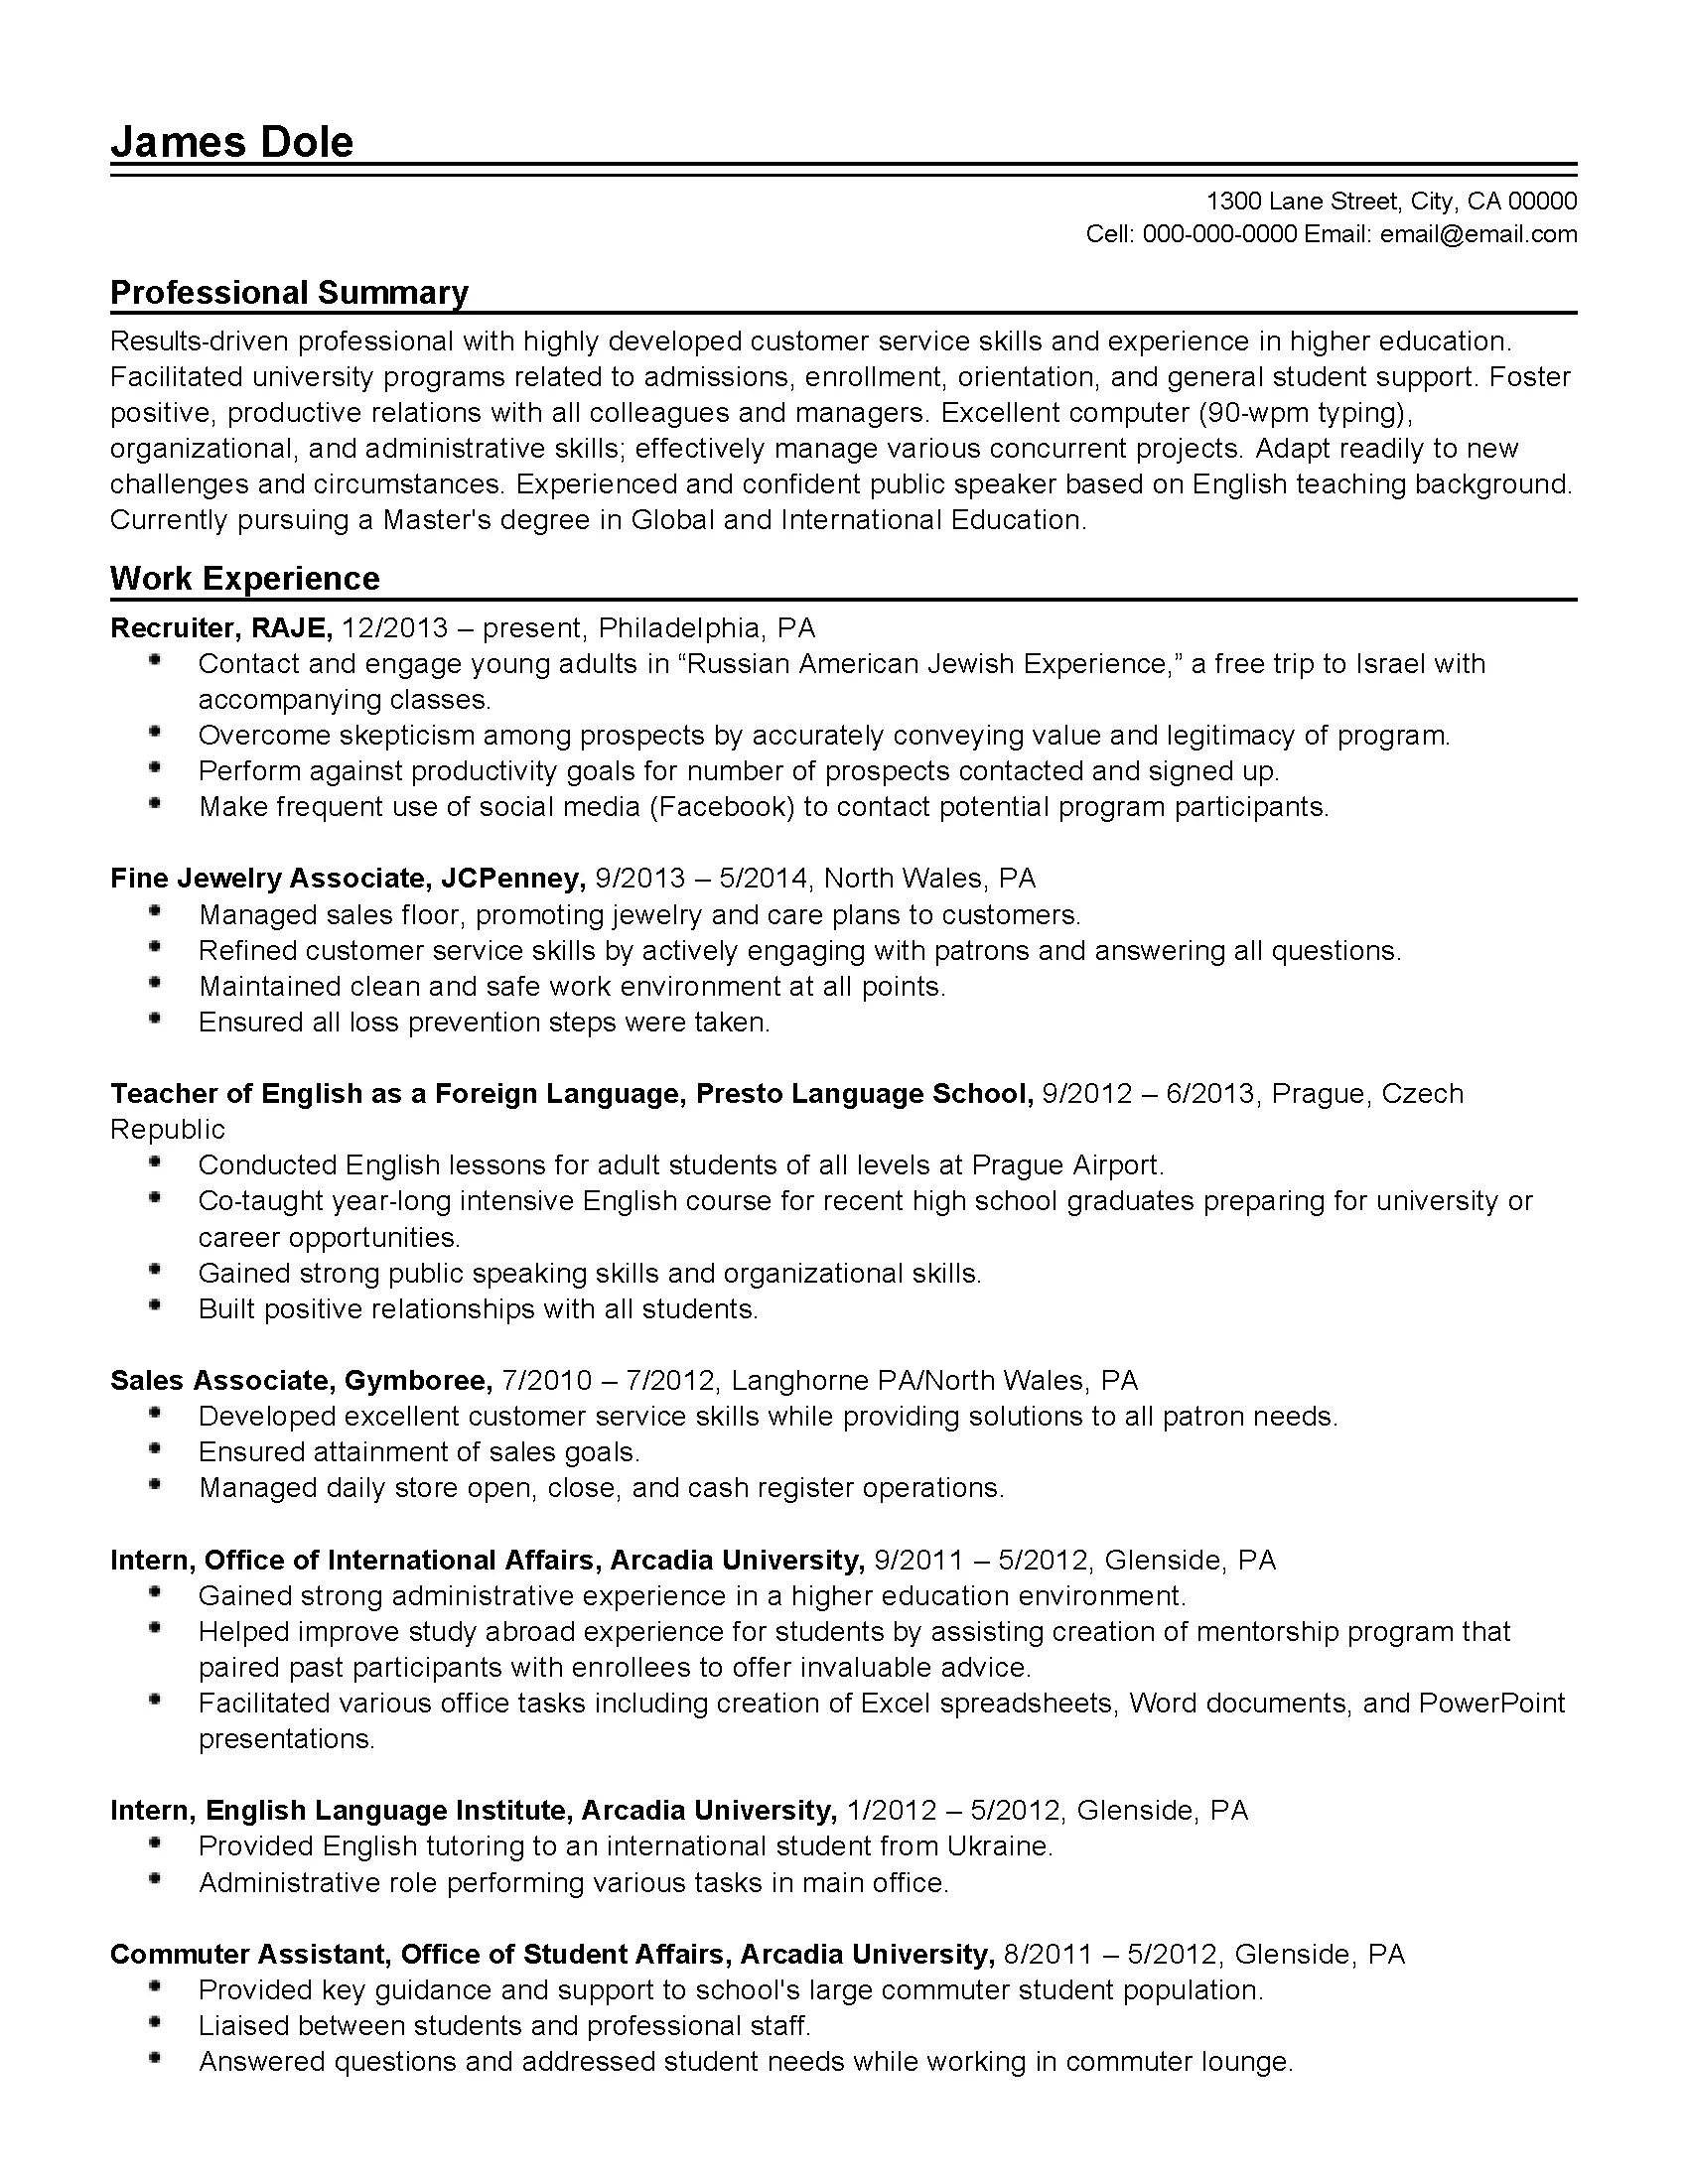 Professional University Administrator Templates To